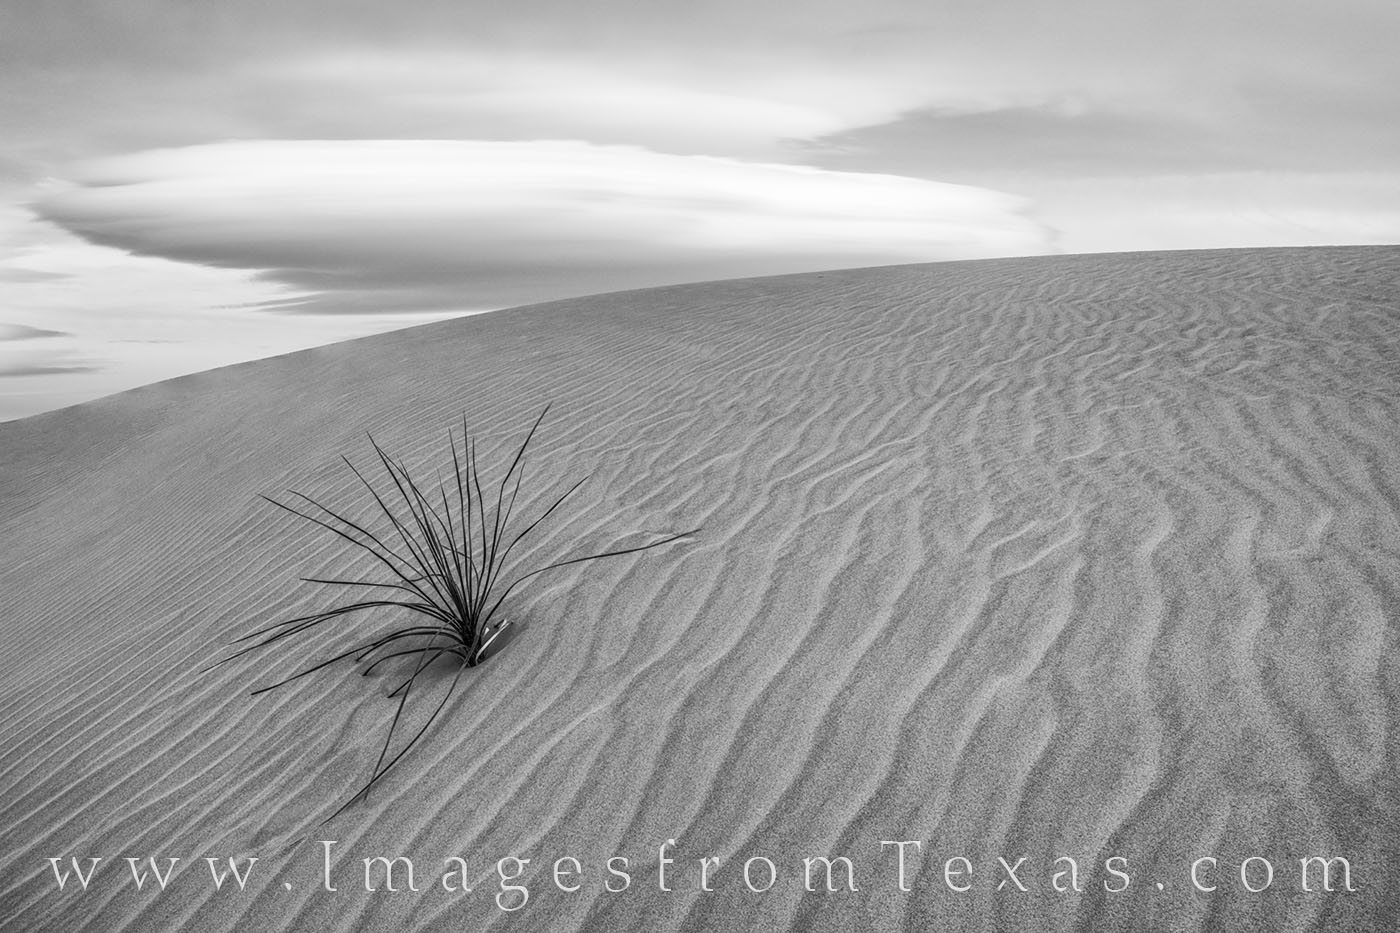 From the Salt Basin Dunes in Guadalupe Mountains National Park, this black and white image shows off one of the most remote areas...